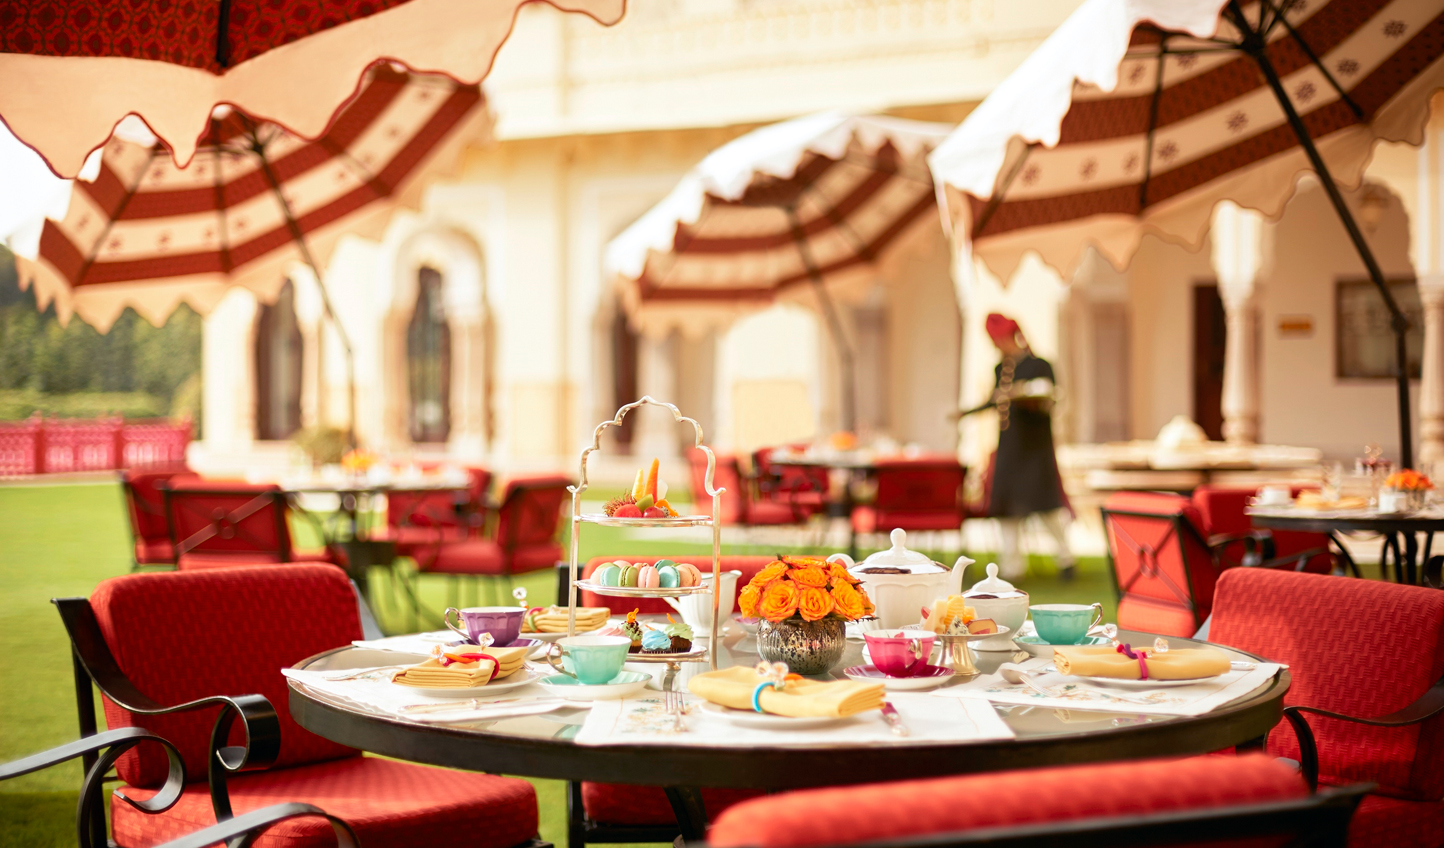 Recharge over an afternoon tea out on the lawns